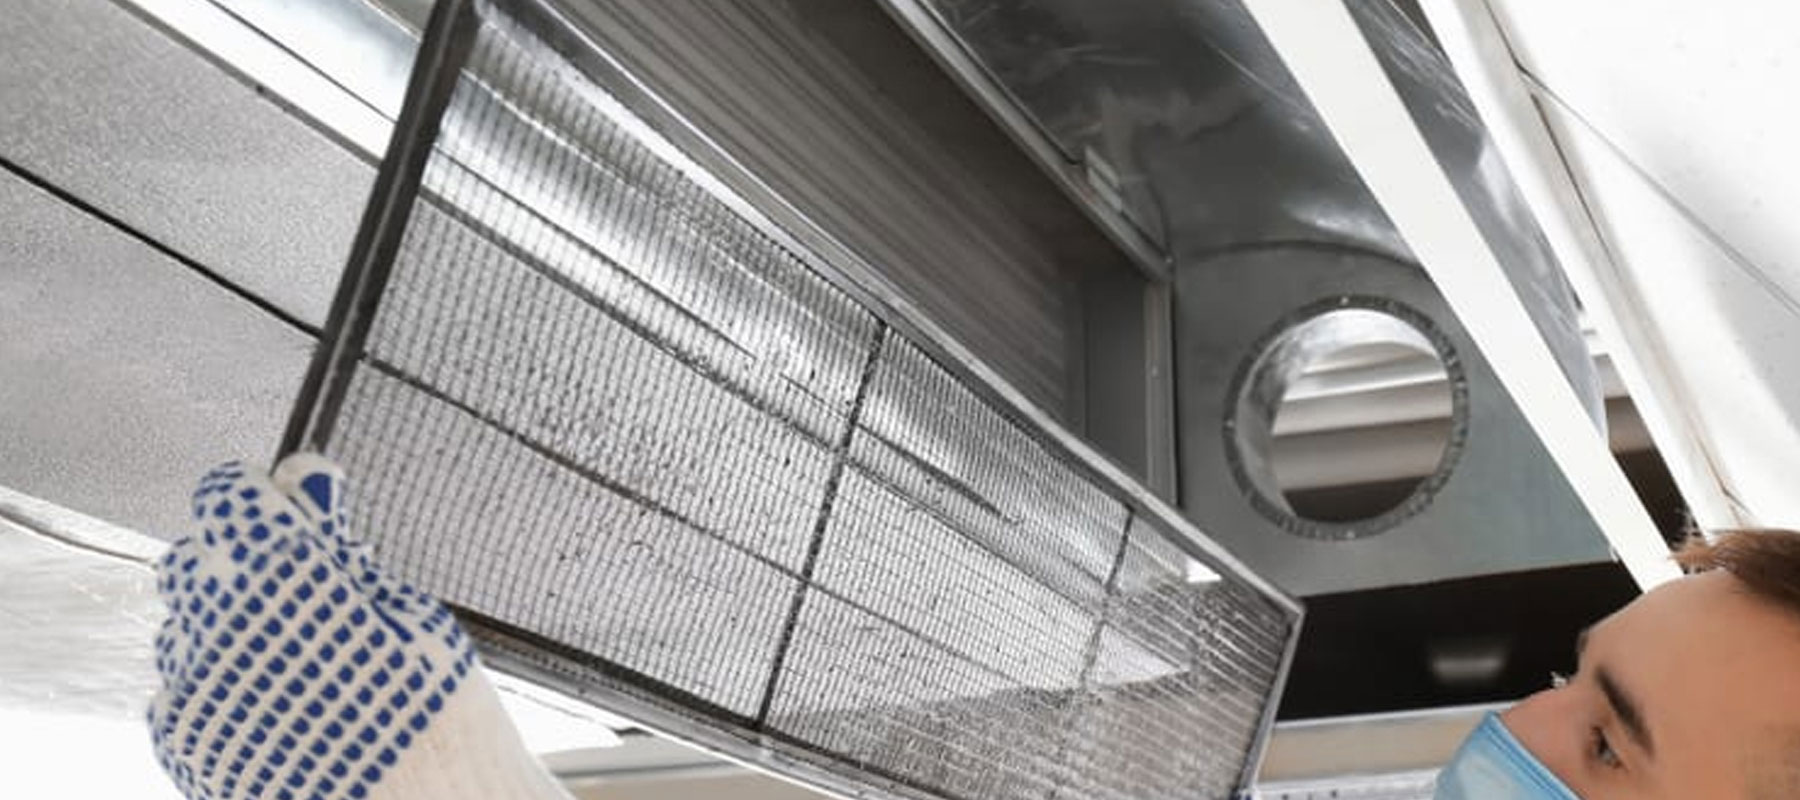 Air Conditioning Cleaning Service | Mr Duct Cleaner